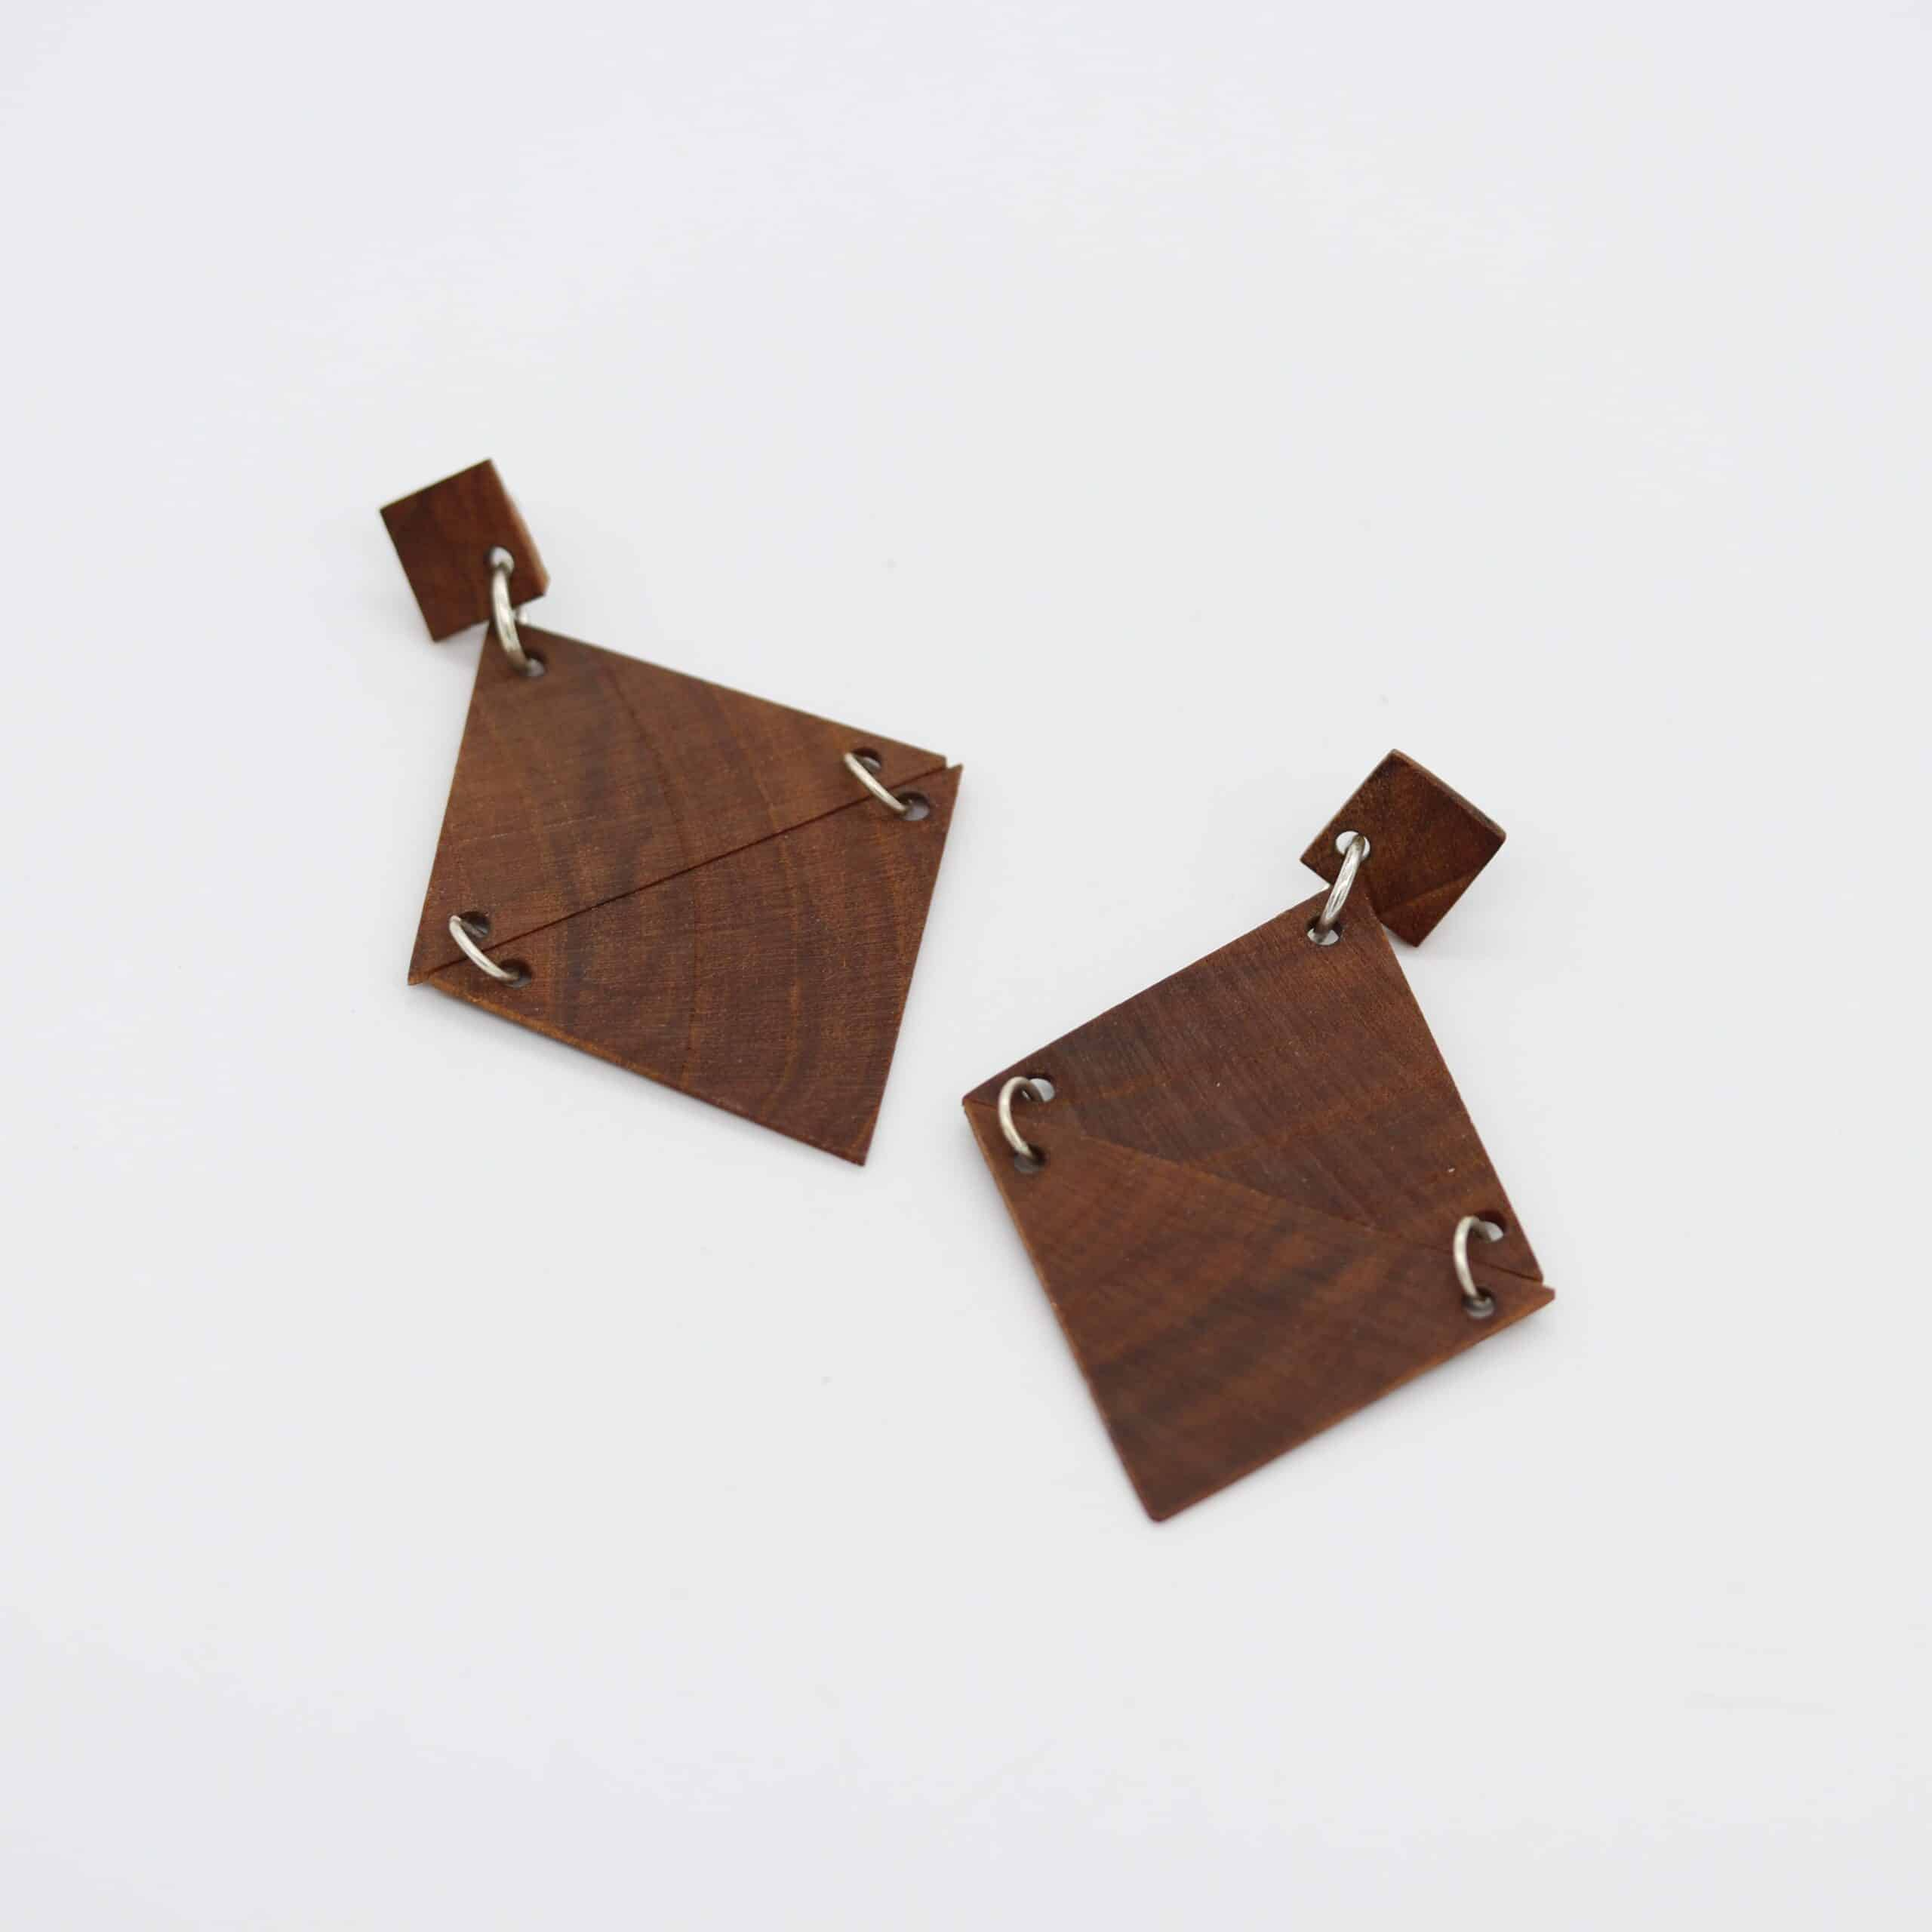 Recycled Timber Earrings – Double Triangle By CO'B By Design